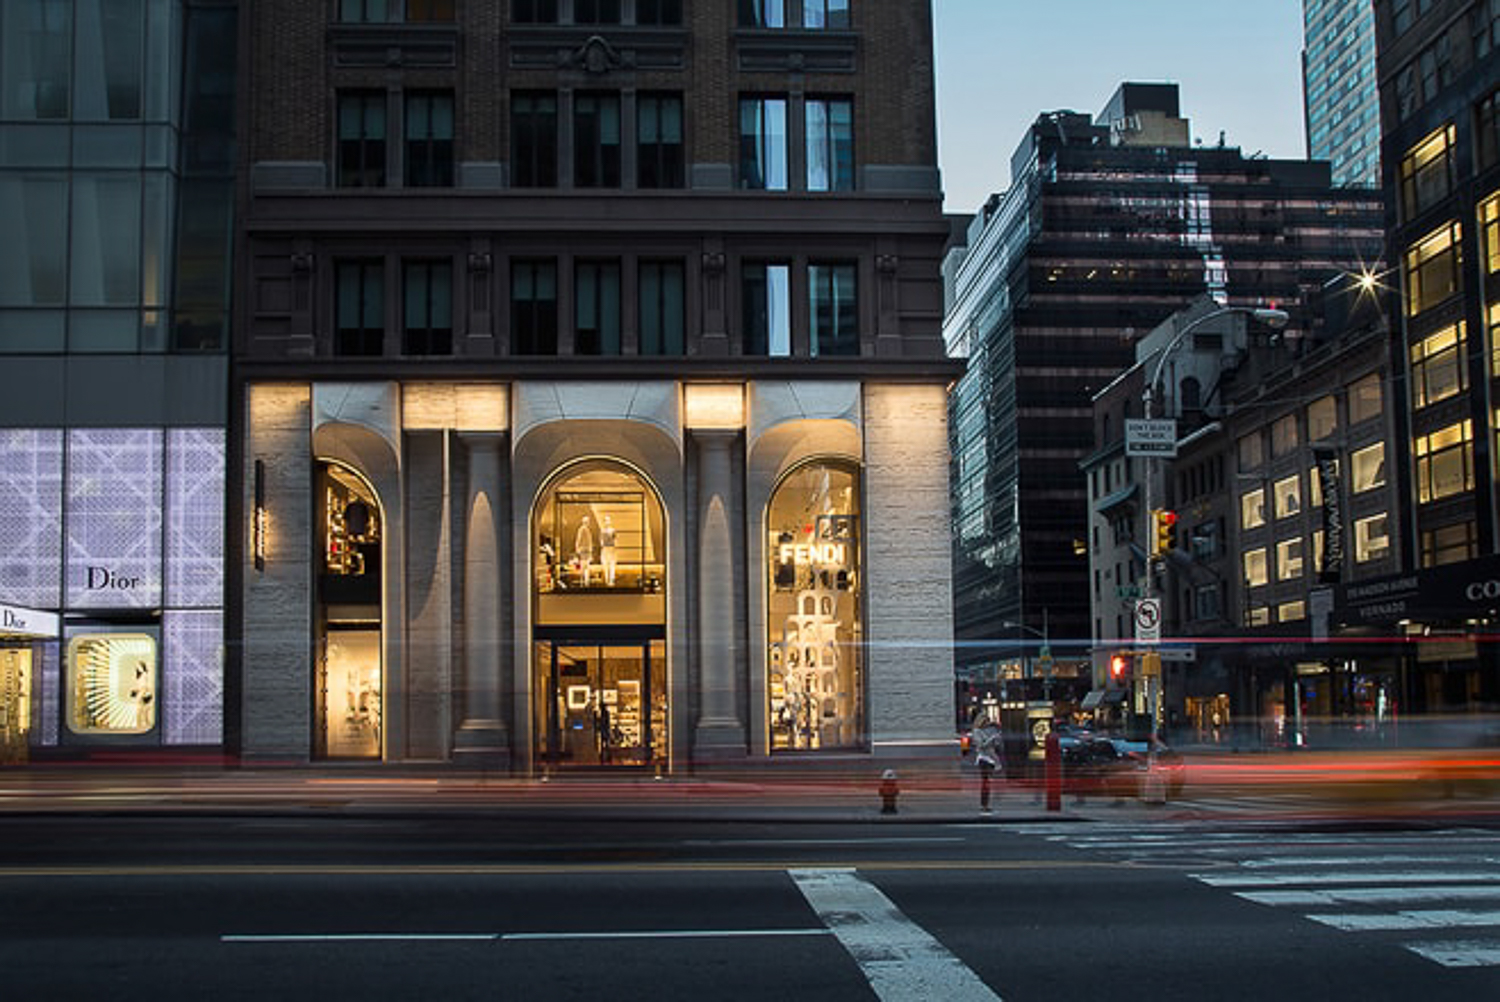 Fendi NYC storefront by urban architecture photographer Ella Bessette. San Francisco Bay Area Architectural building photographers